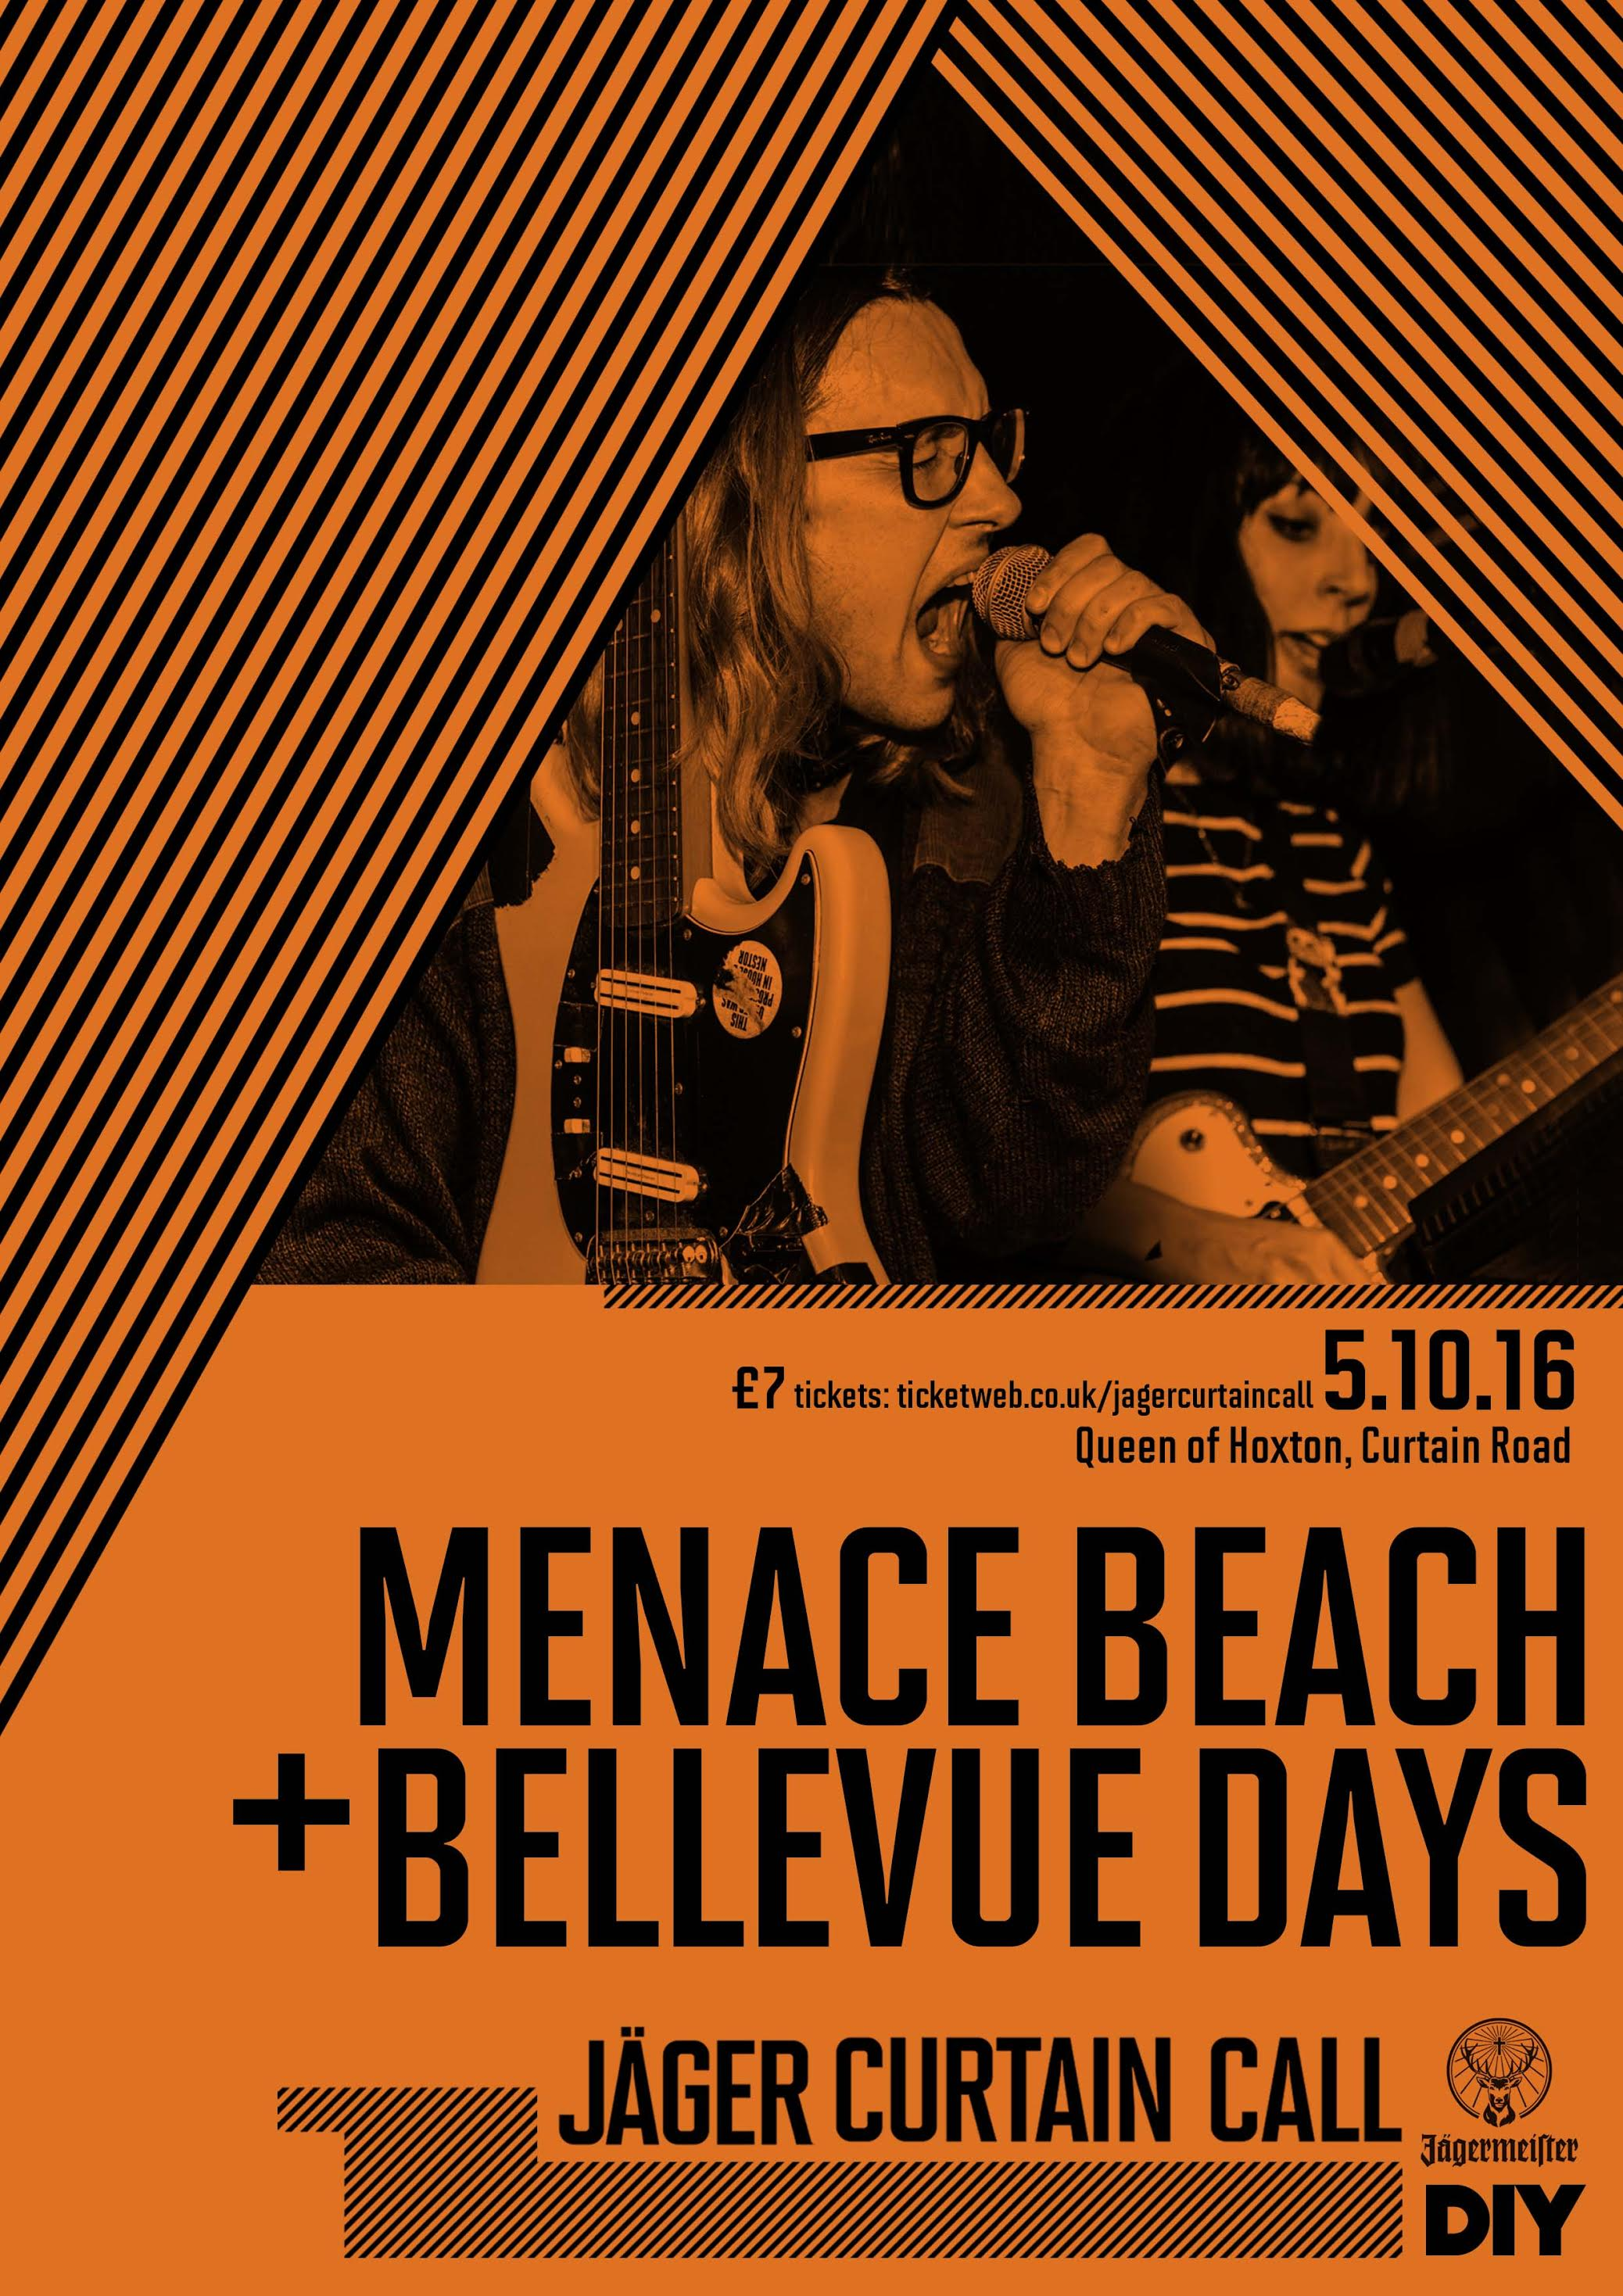 Menace Beach join Bellevue Days for Jäger Curtain Call show